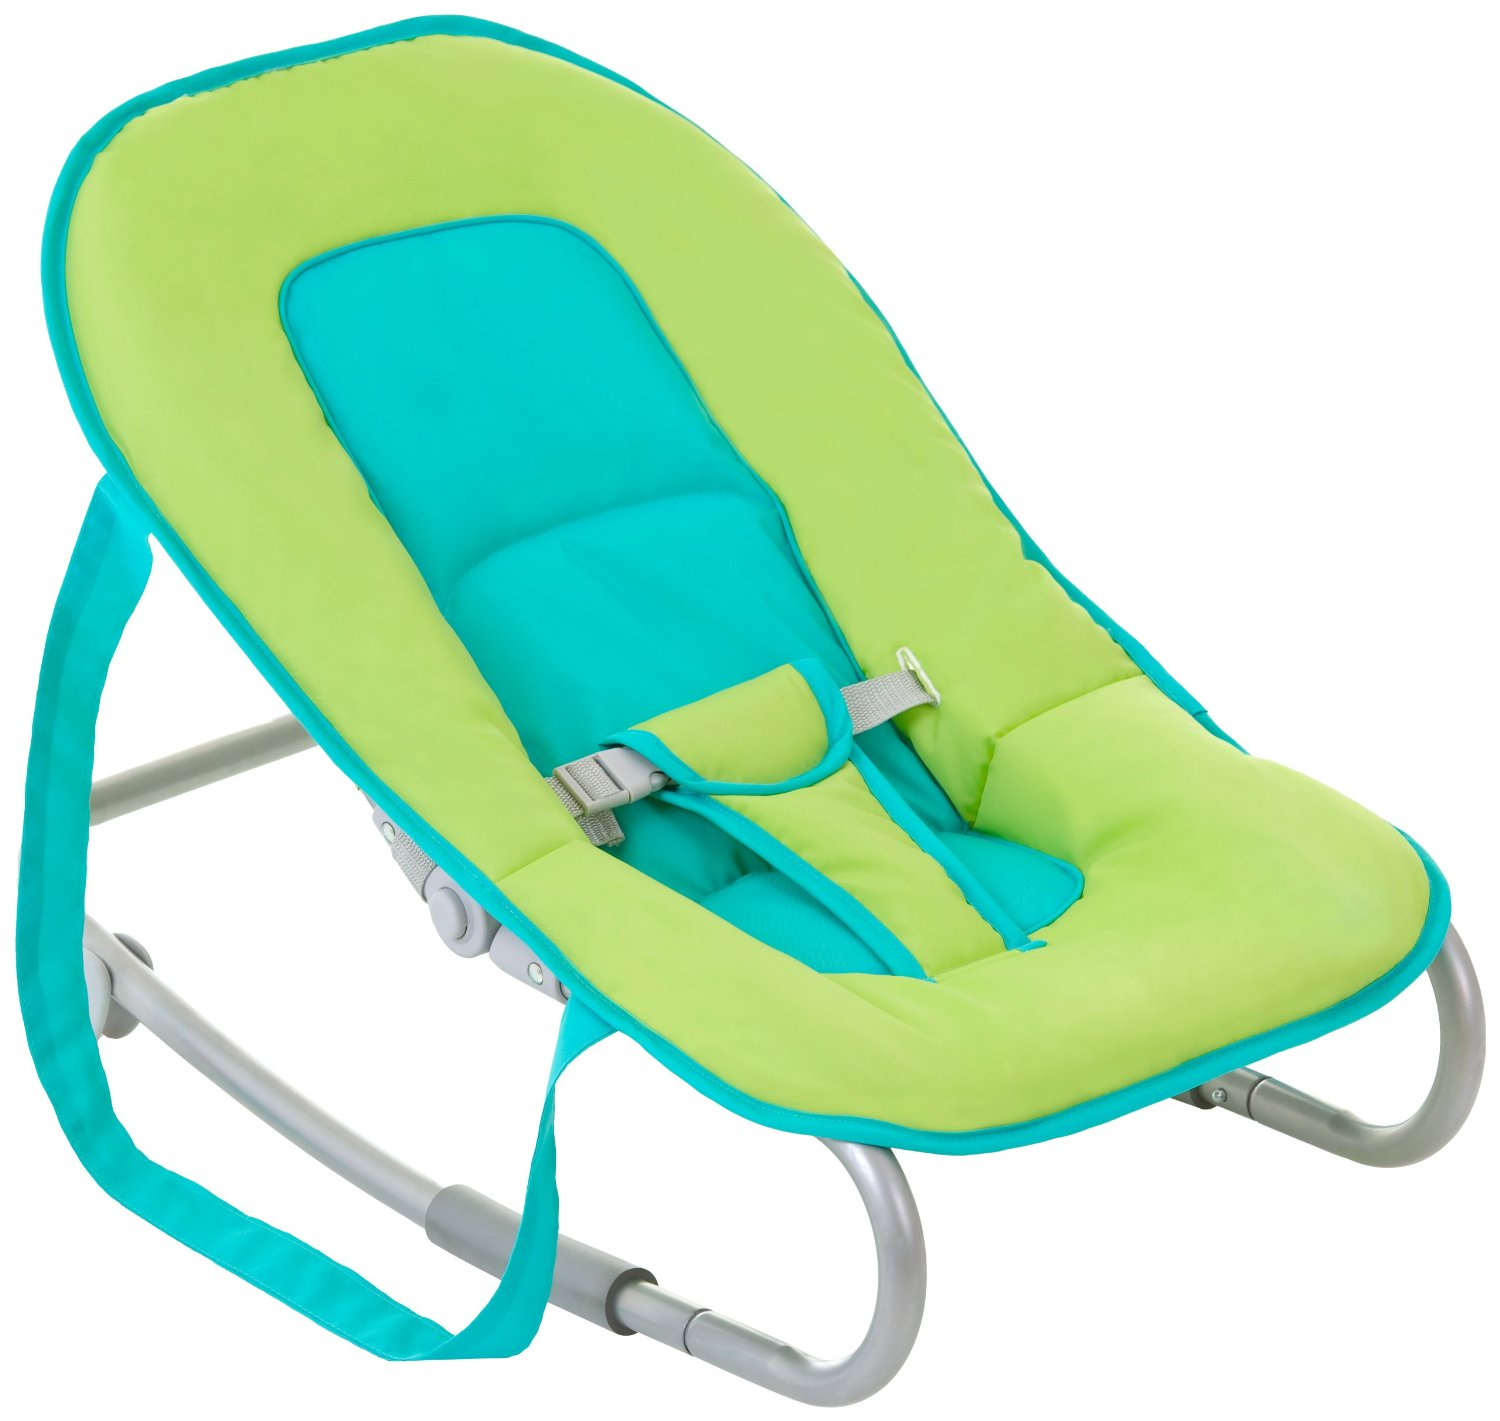 Hauck Lounger Rocky Babywippe Babywippe Test